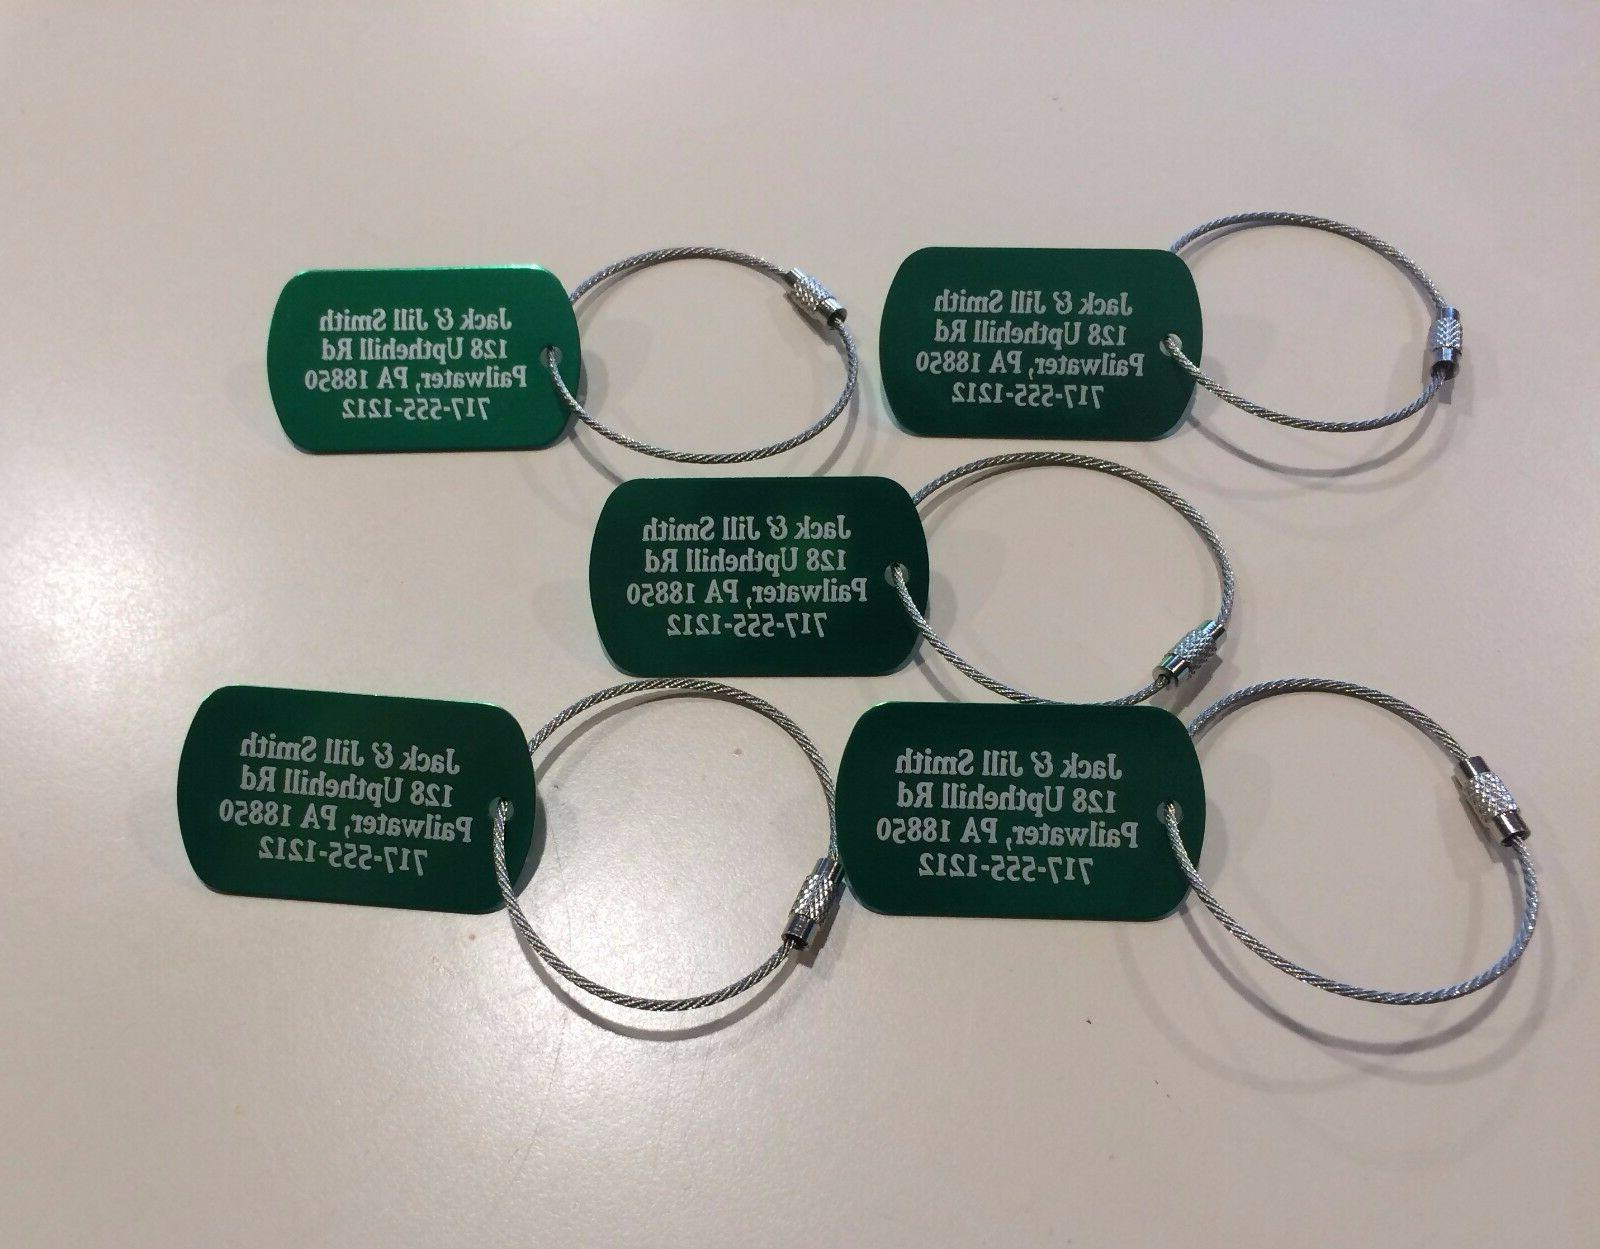 personalized metal luggage tags set of 5